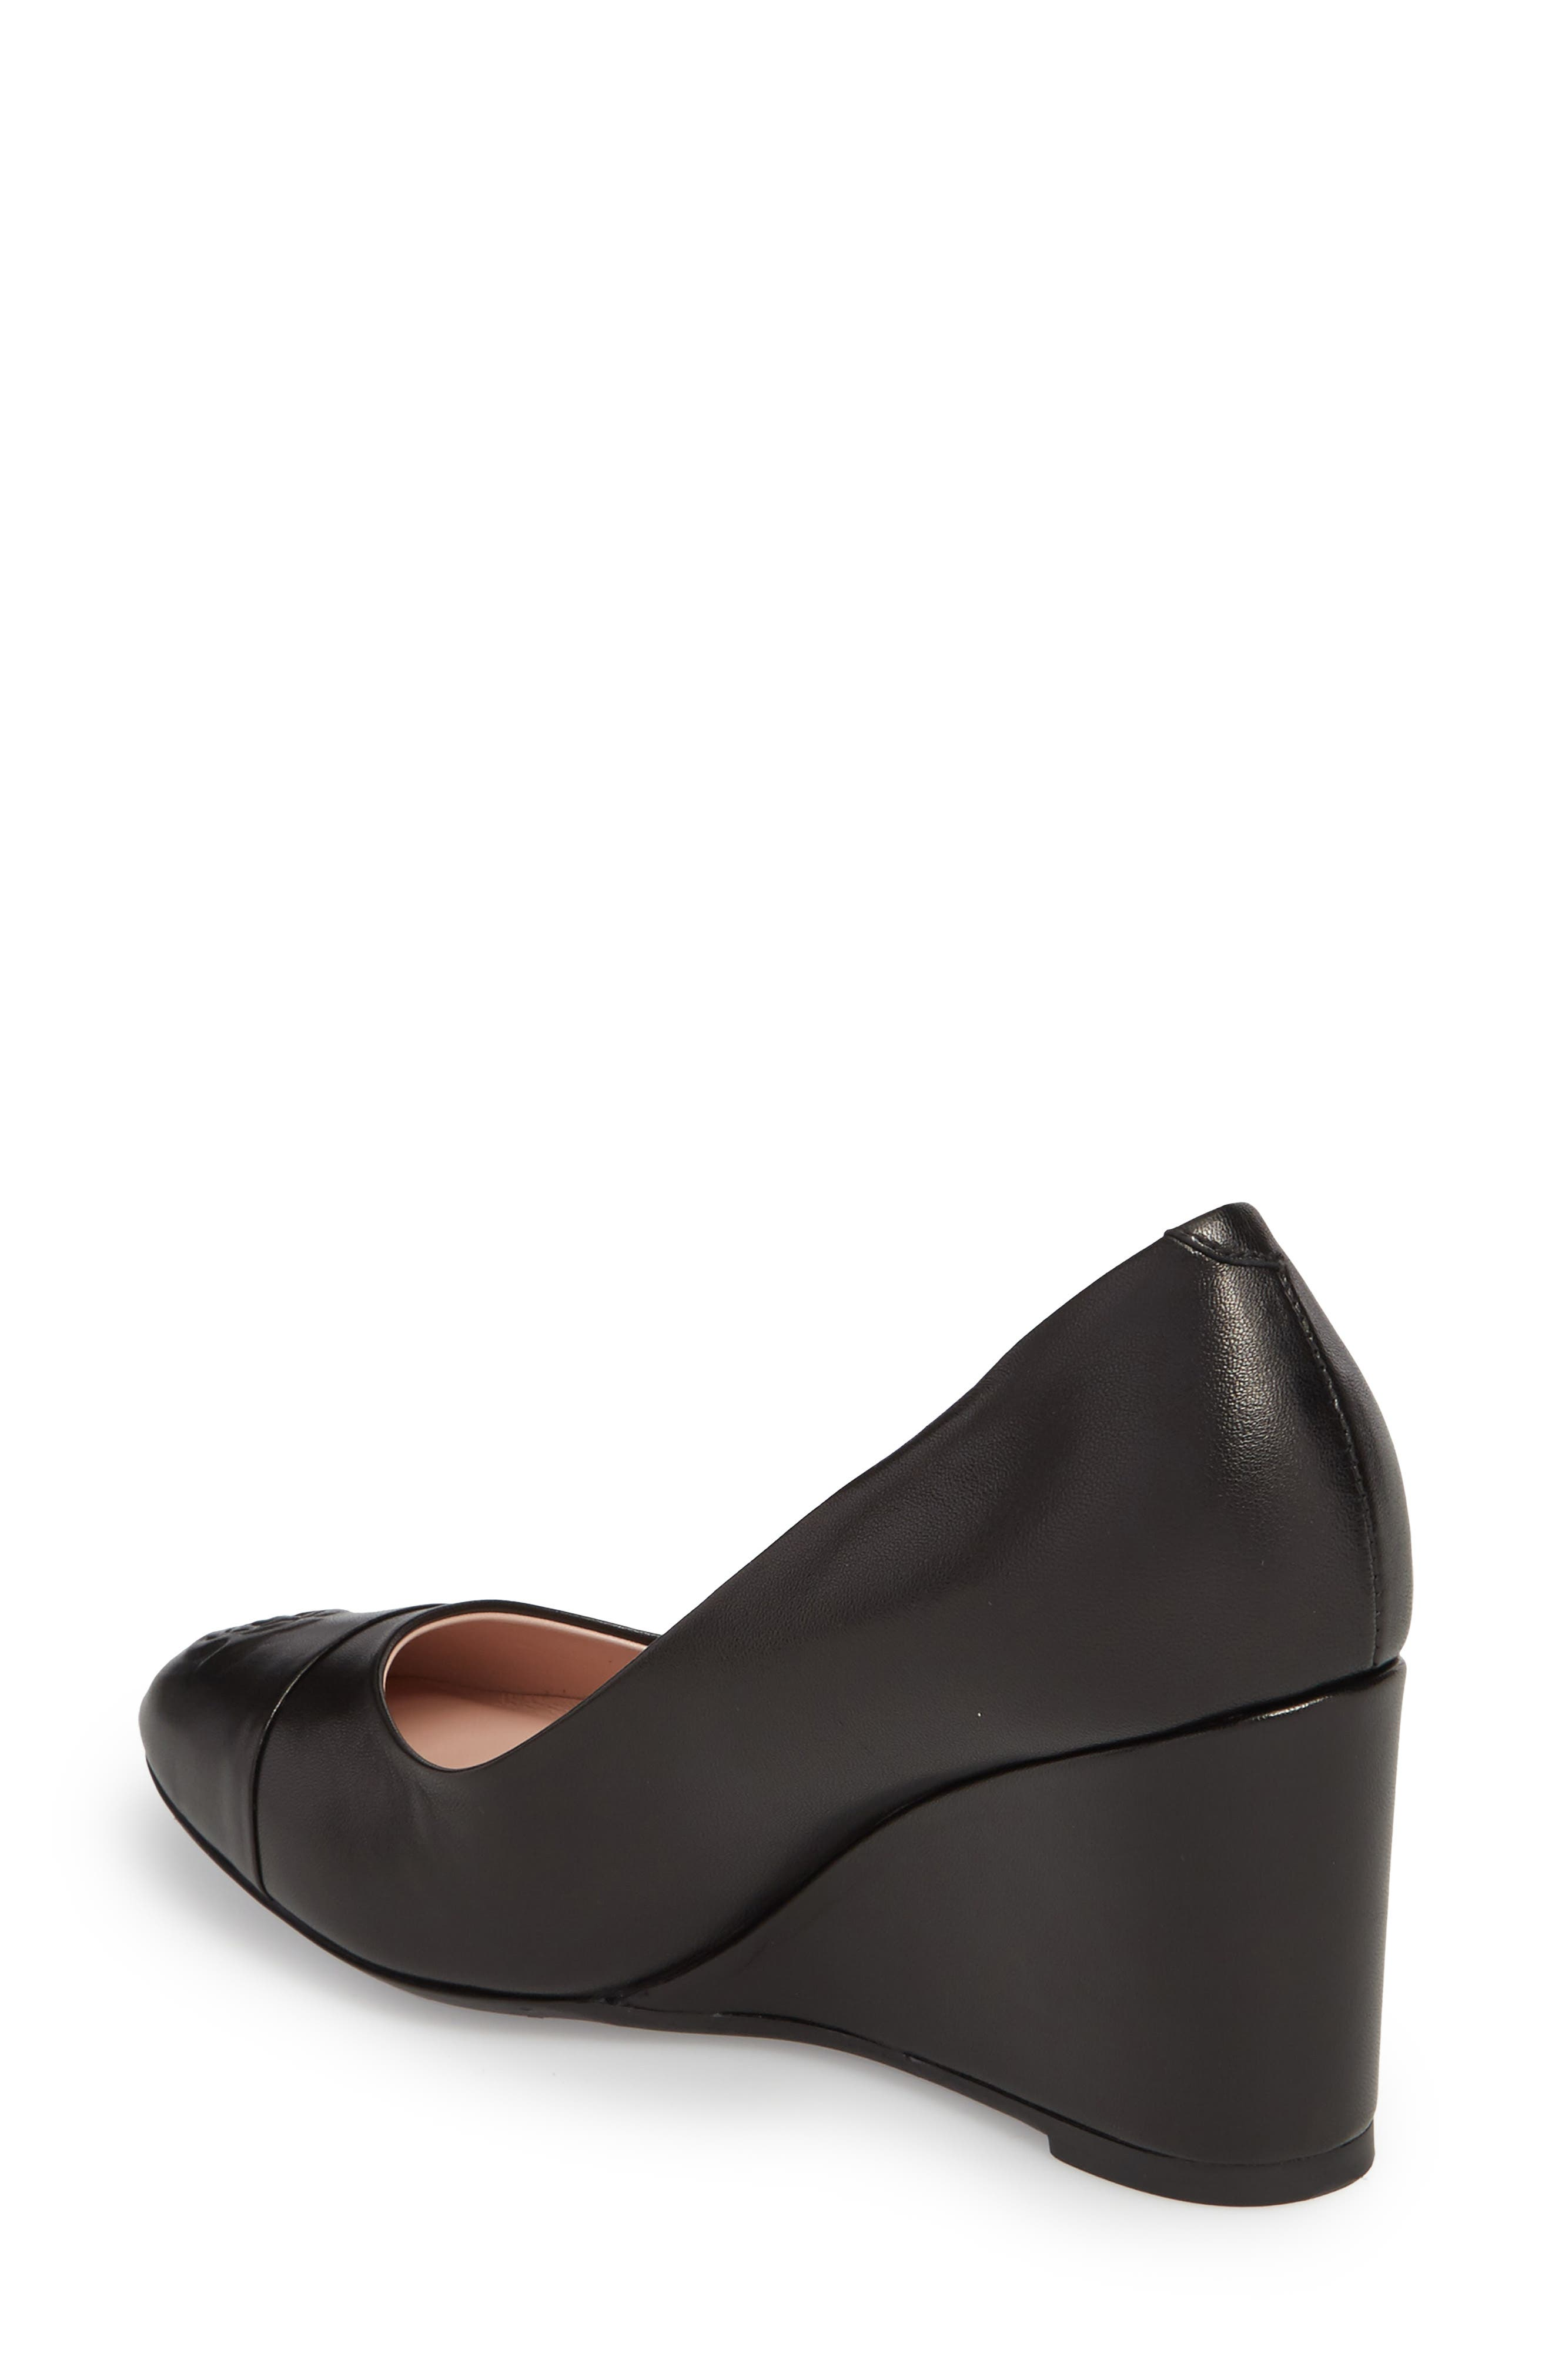 Taryn Rose Isabella Wedge,                             Alternate thumbnail 2, color,                             Black/ Black Leather